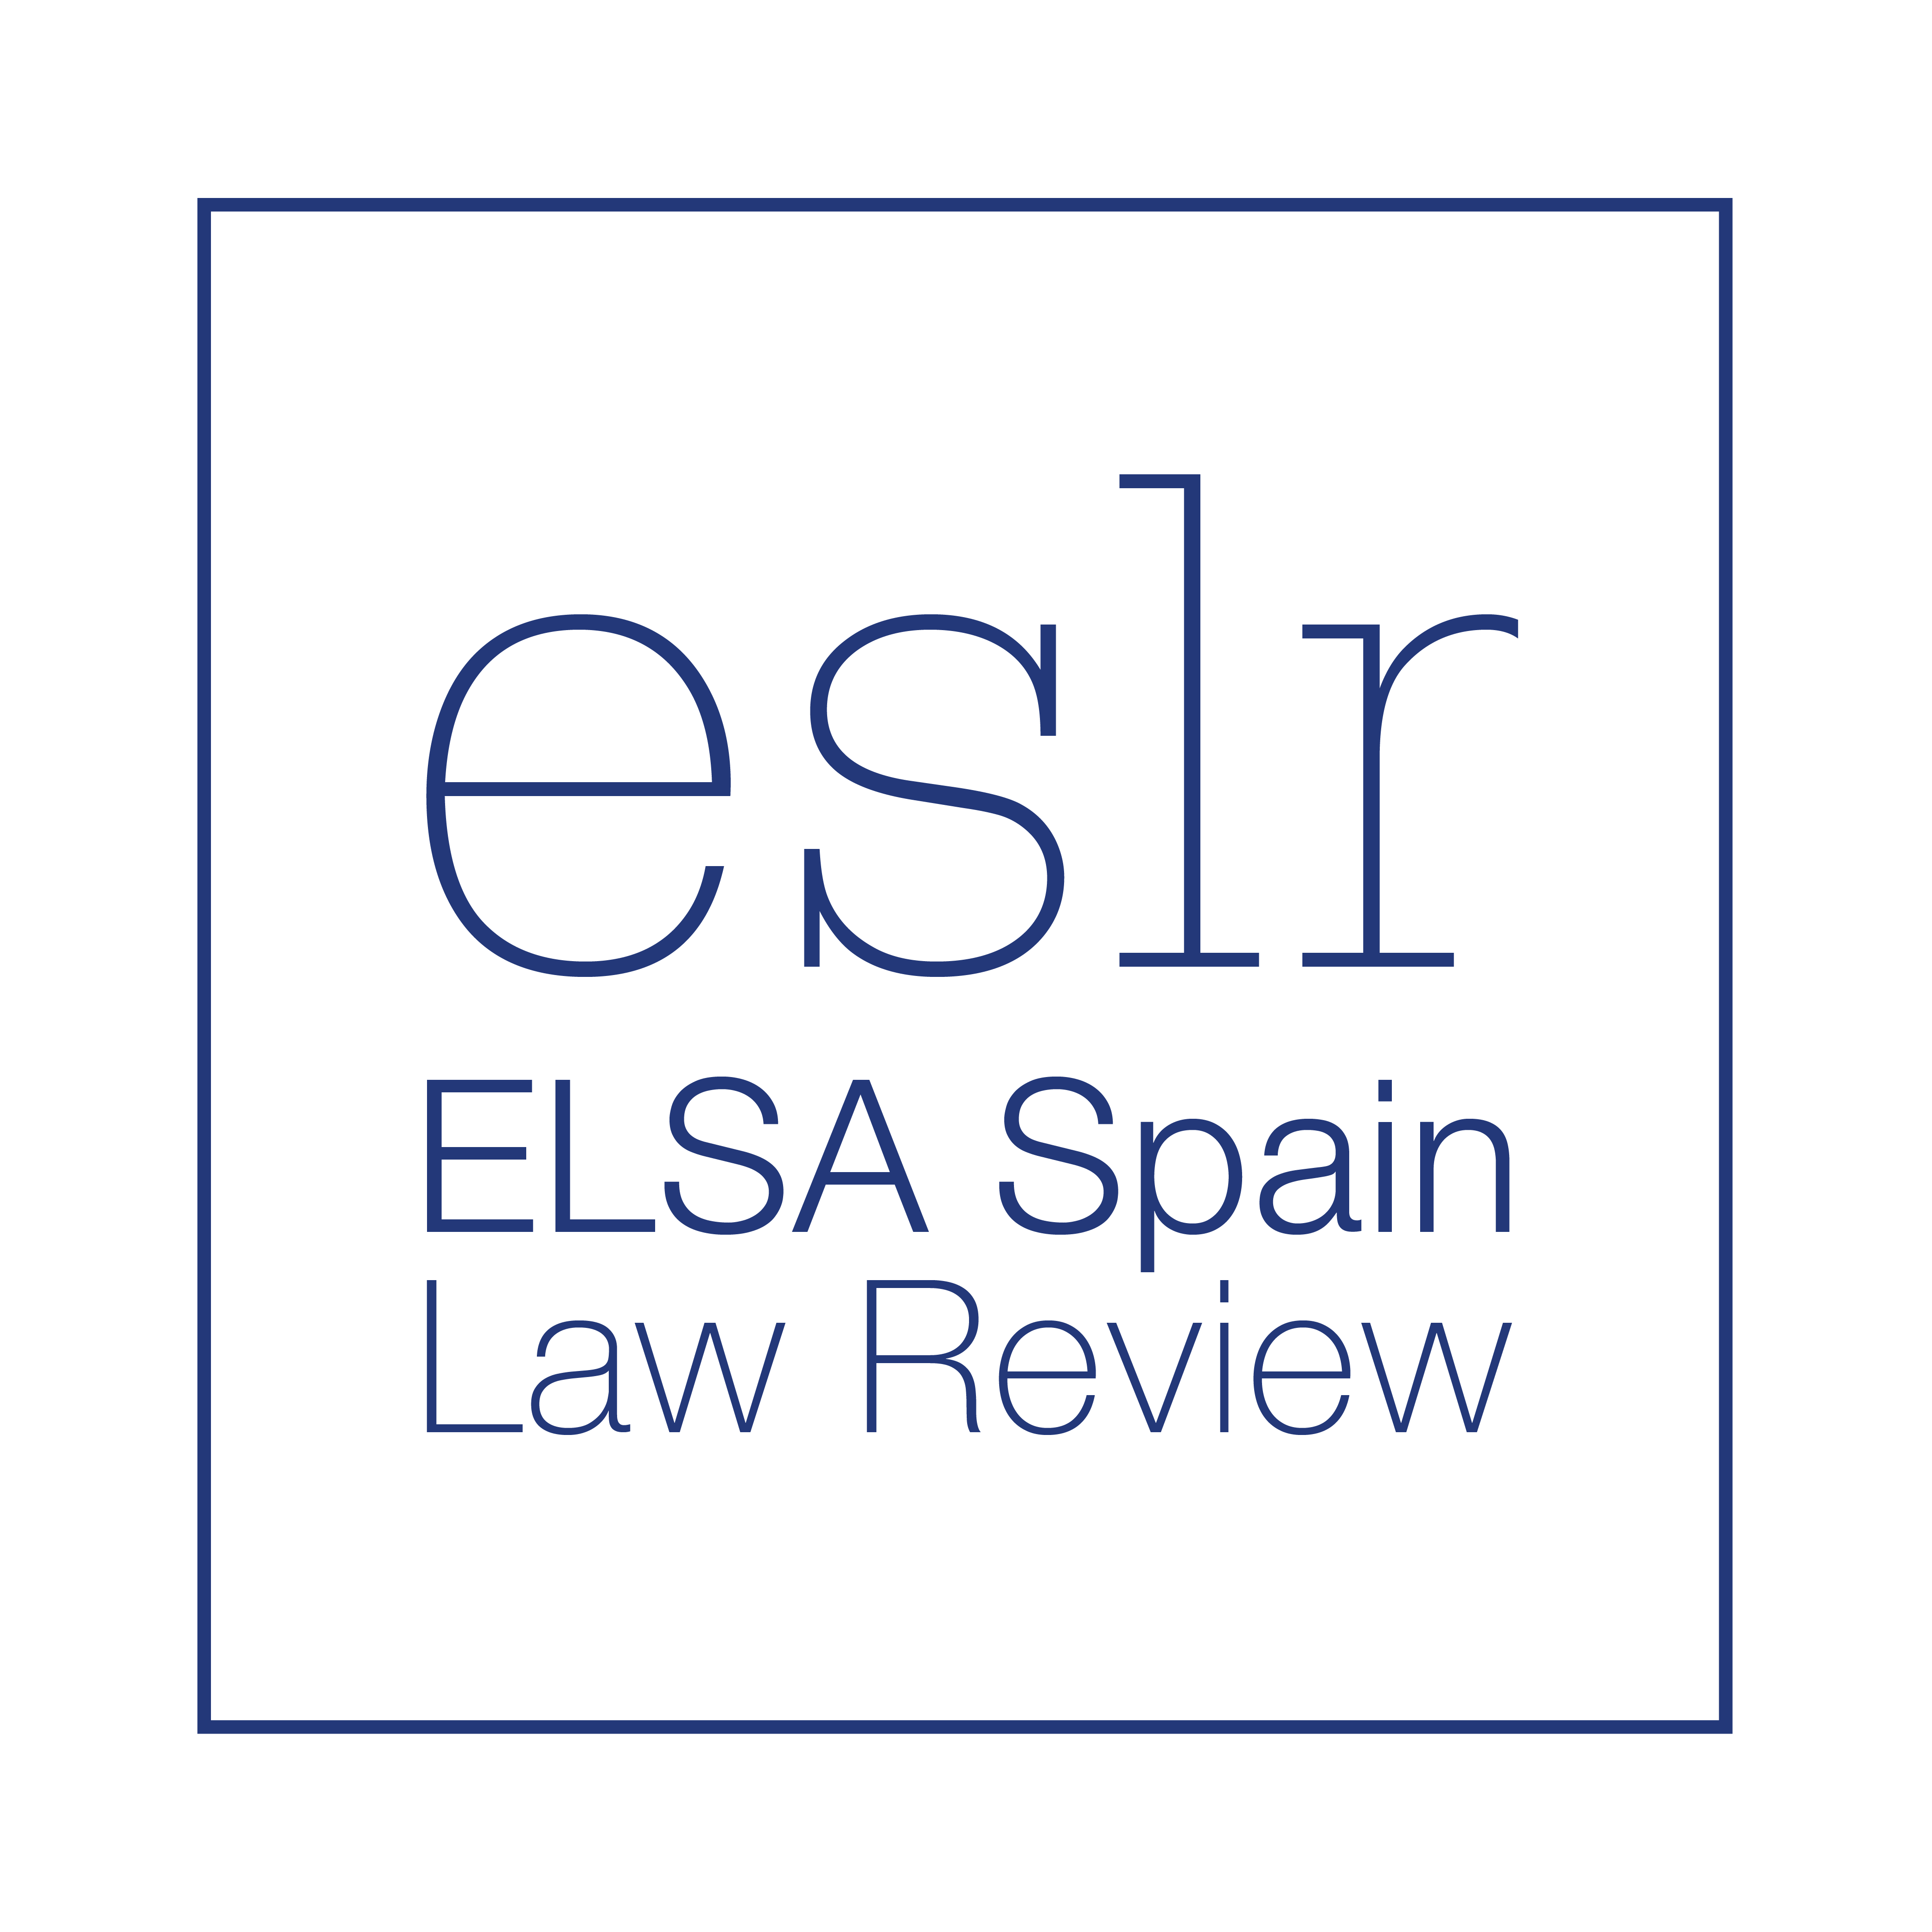 ELSA Spain Law Review